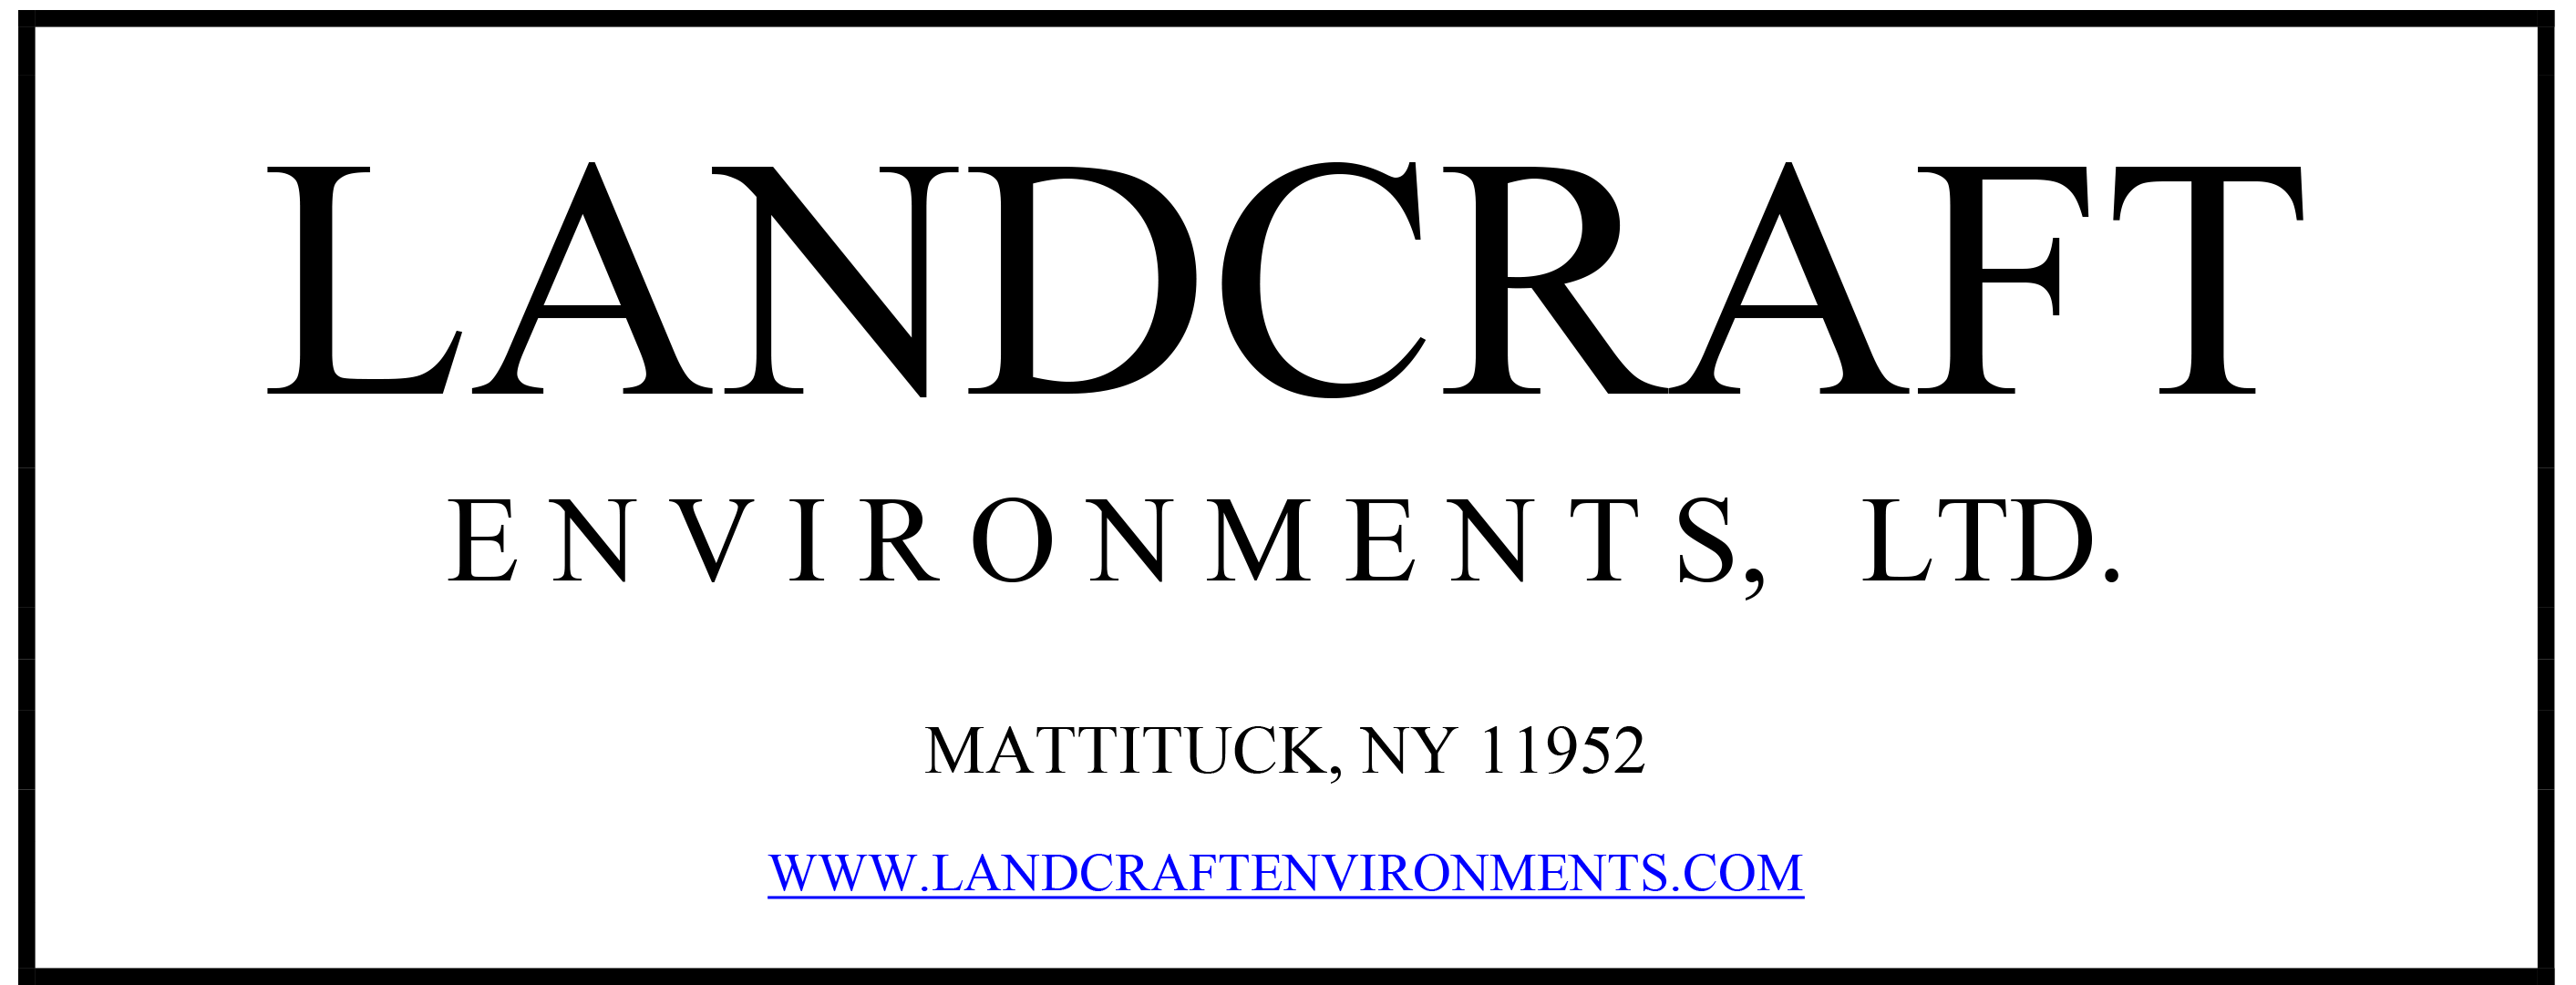 Landcraft Environments LTD Logo